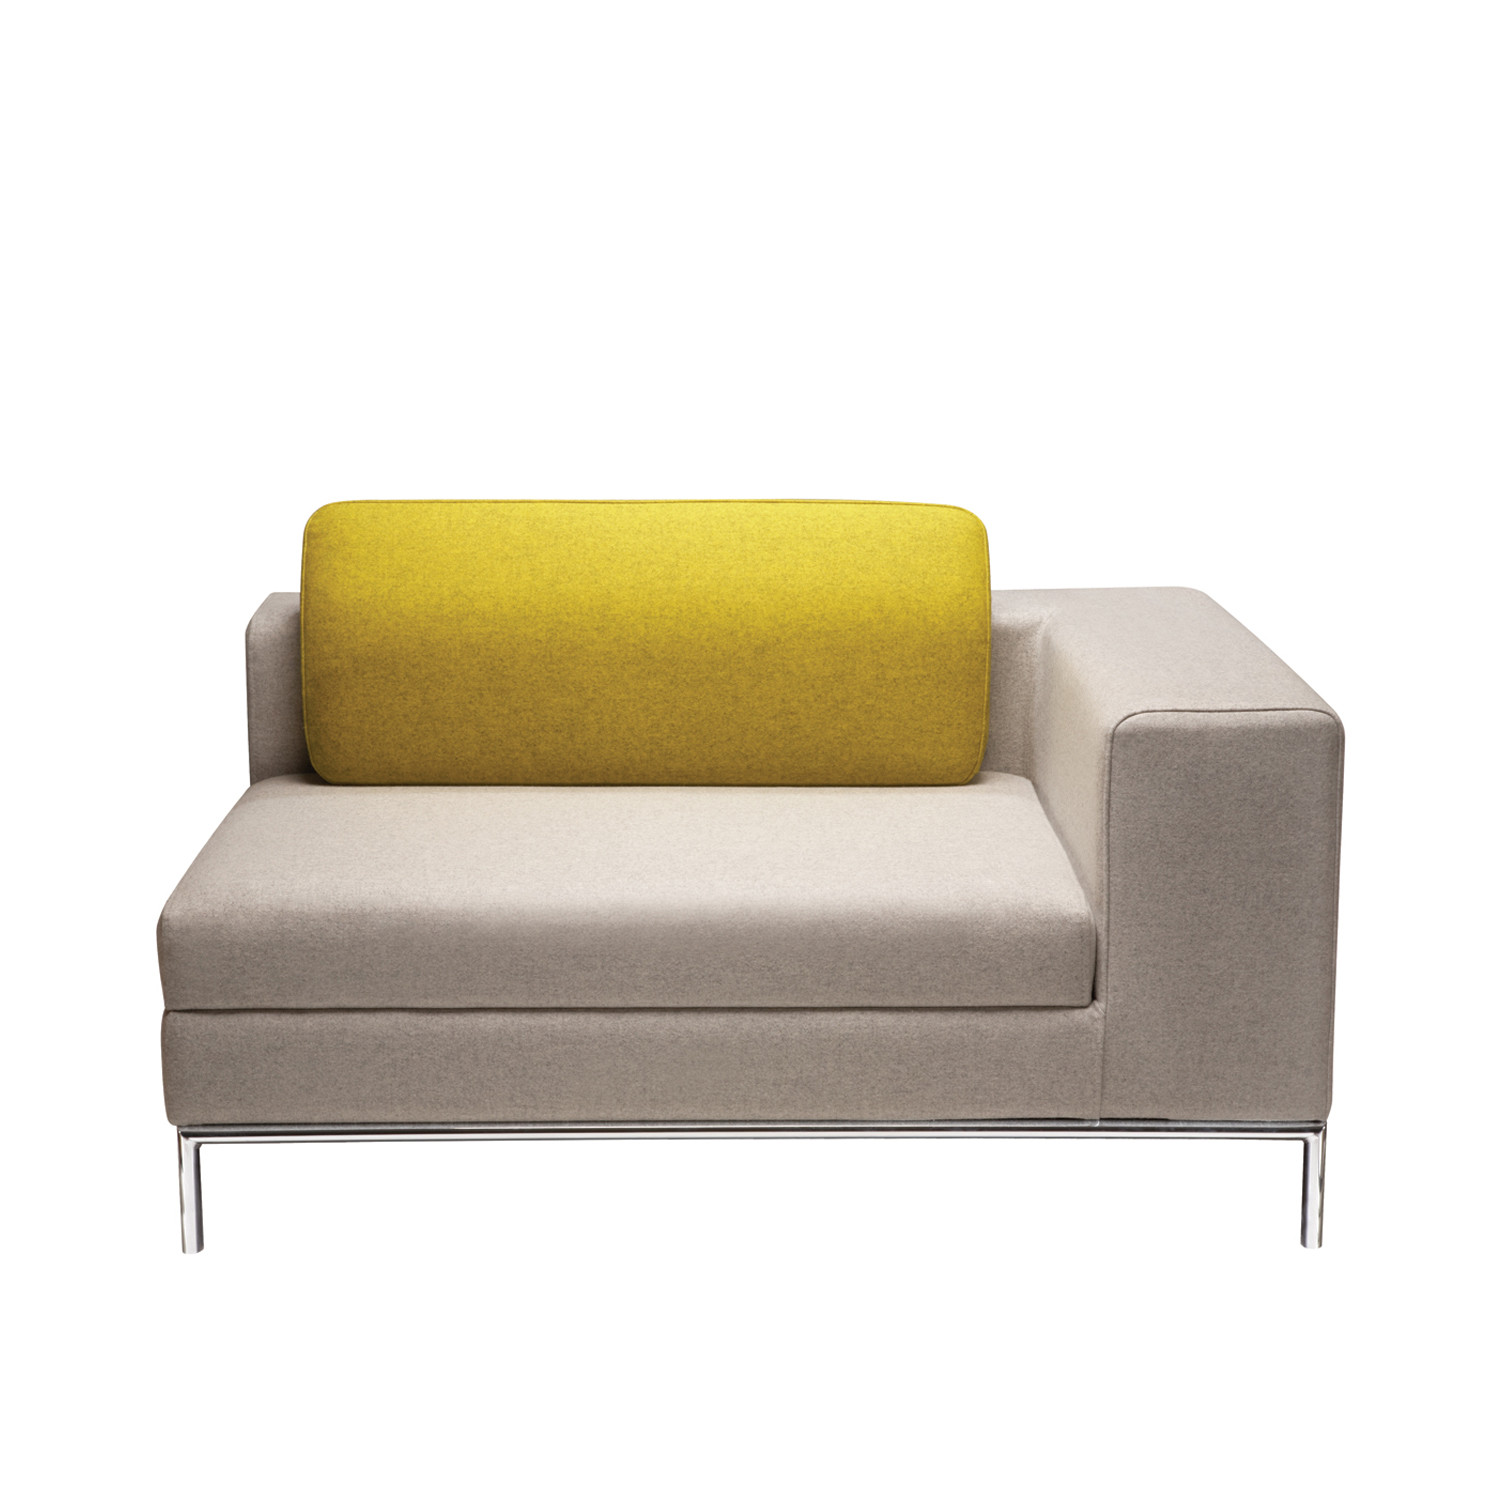 Modular Furniture Sofa: Contemporary Reception Sofas